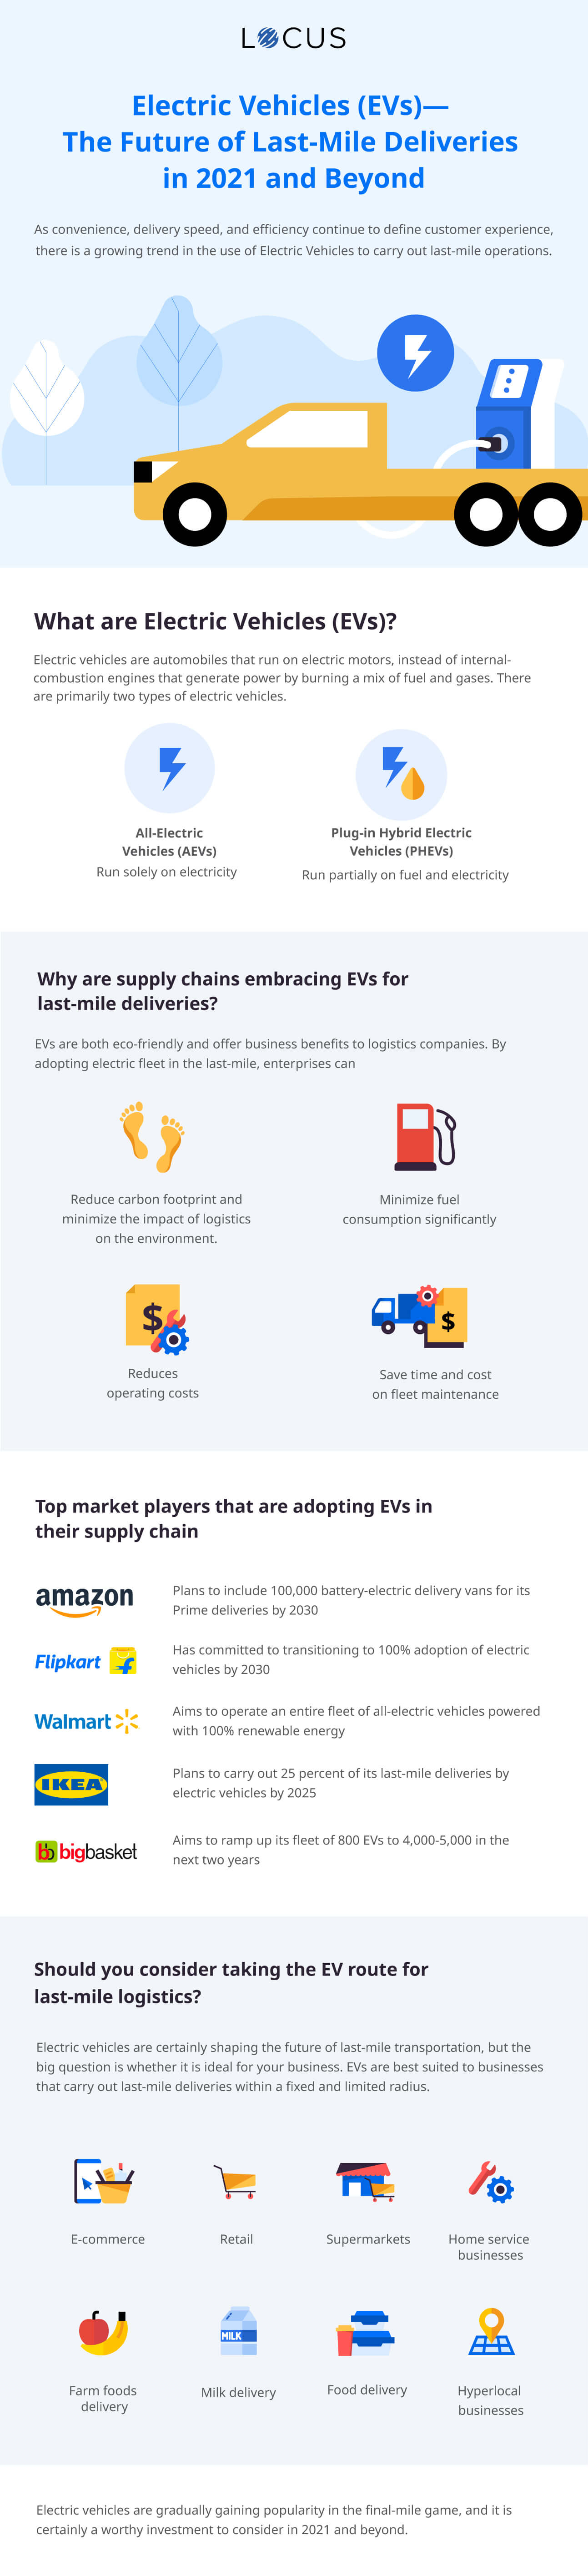 [Infographic] Electric Vehicles - The Future of Last-Mile Deliveries